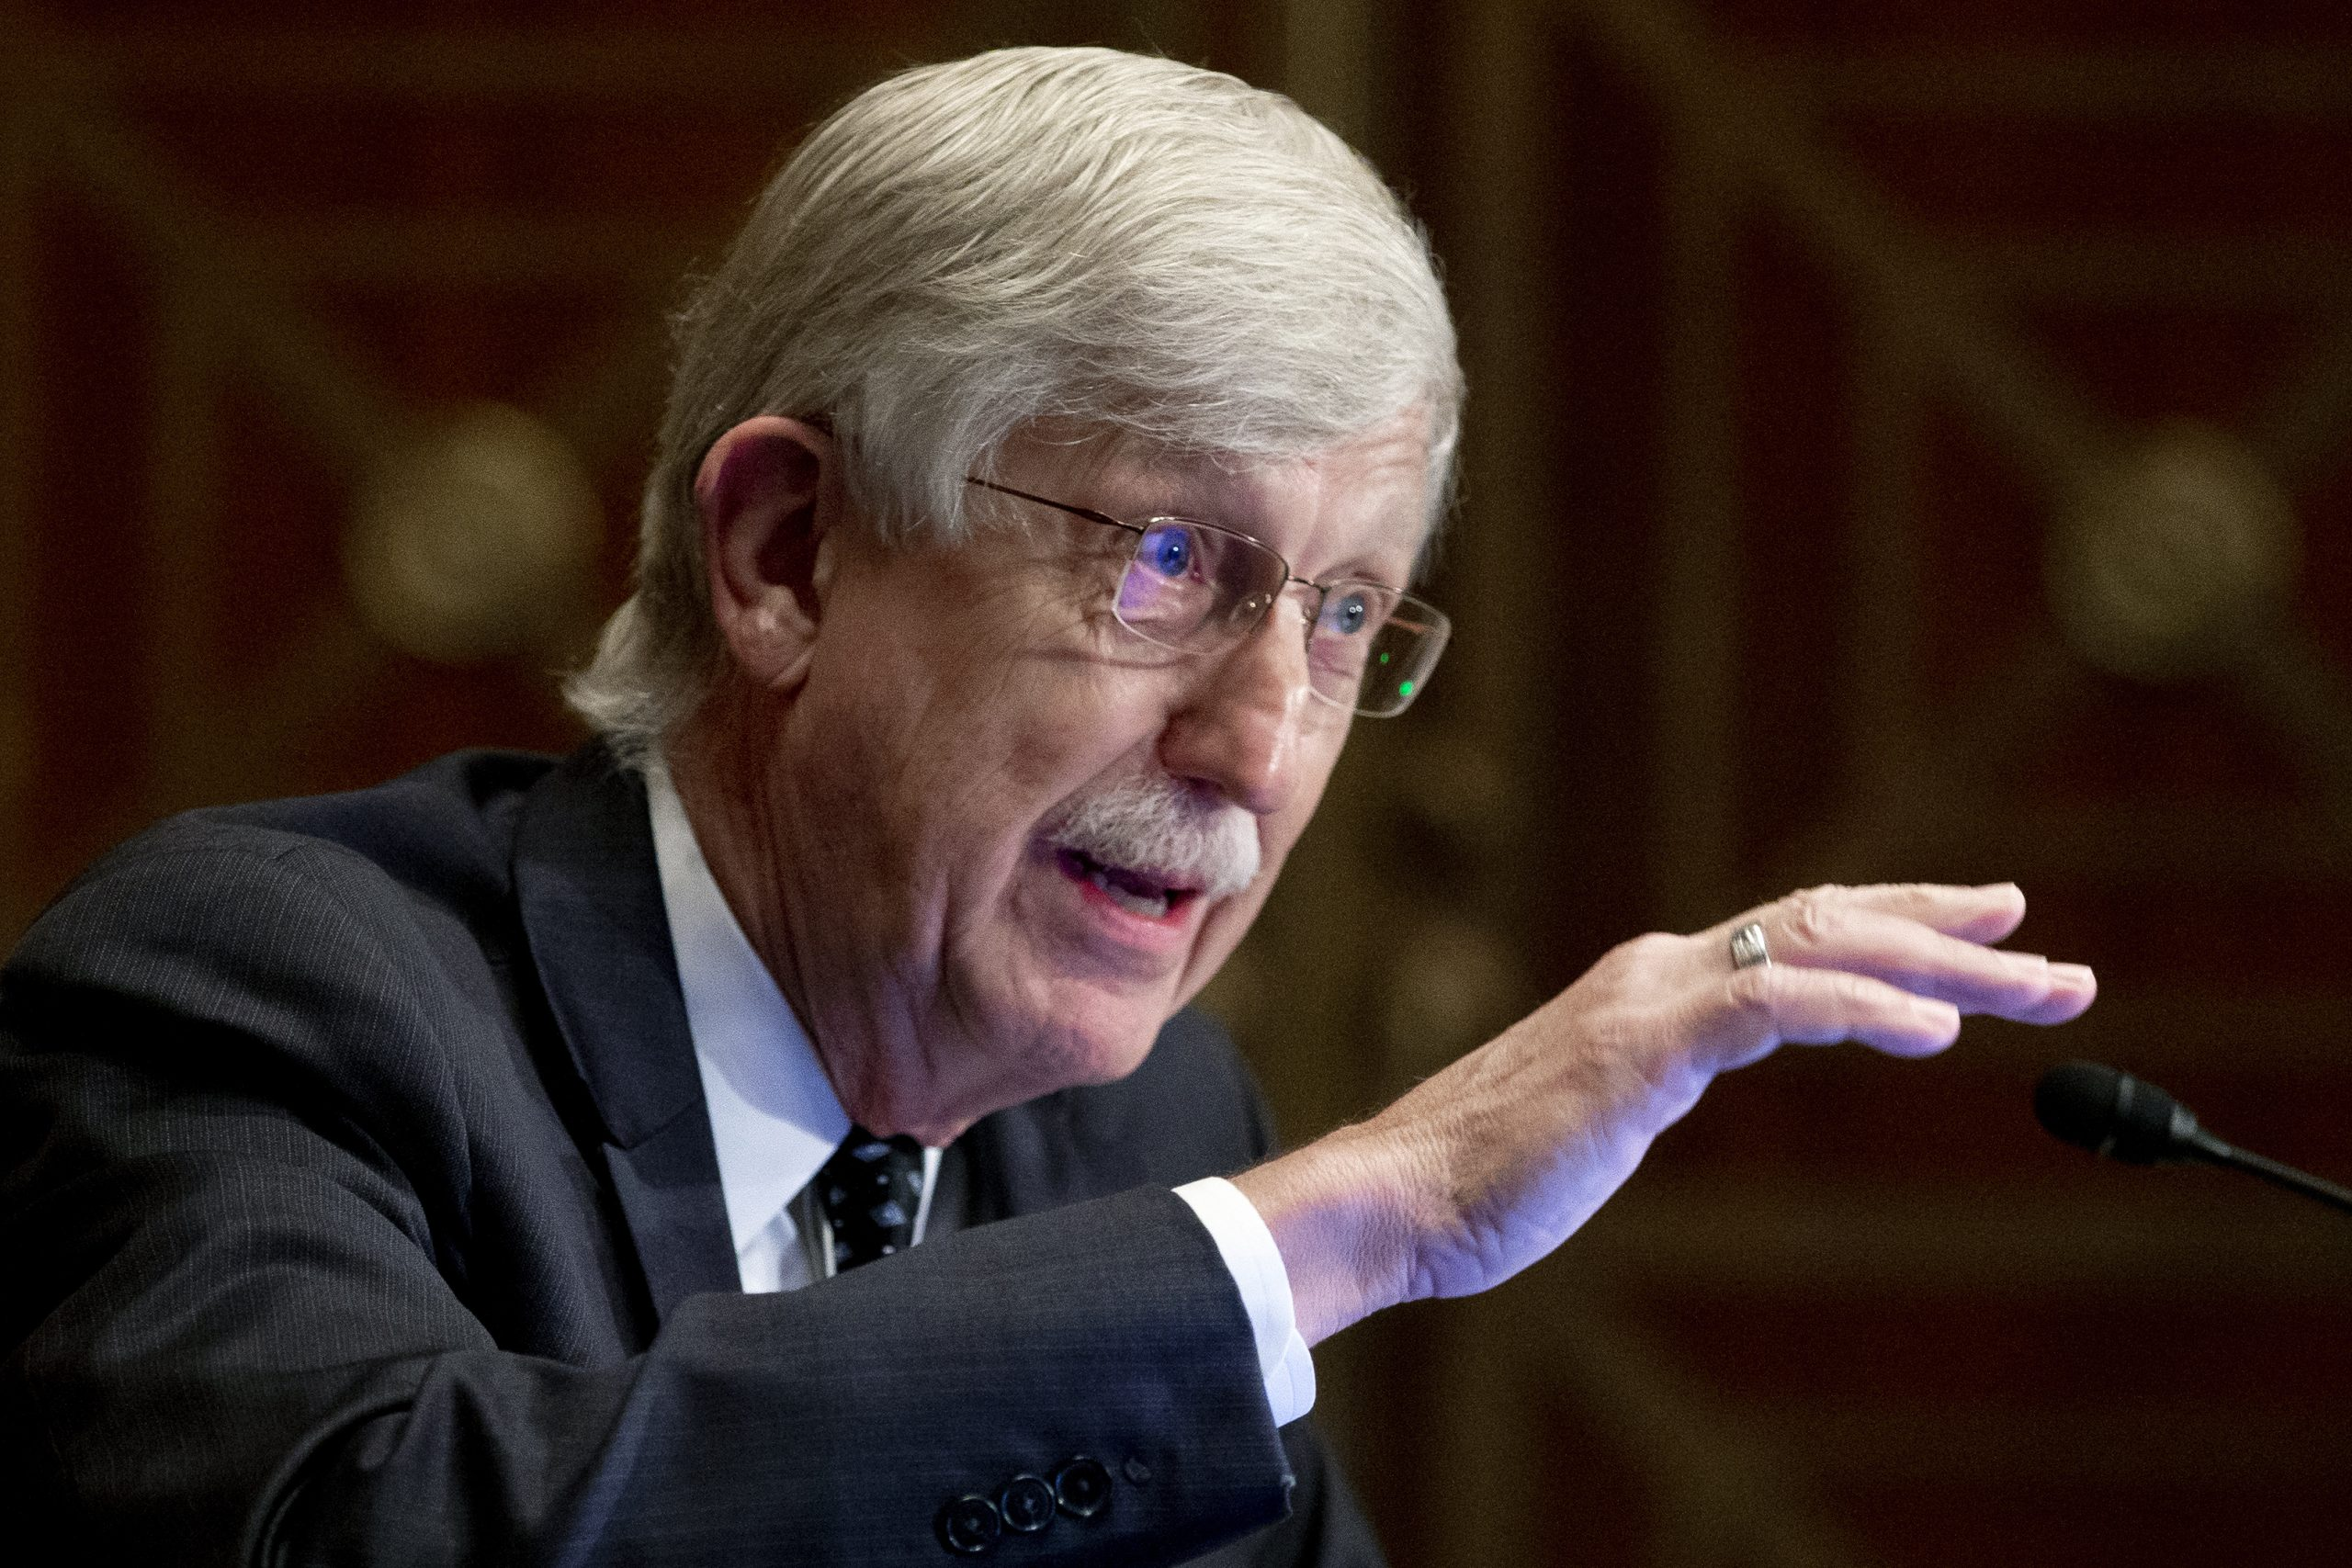 NIH Director Francis S. Collins to Step Down by End of Year